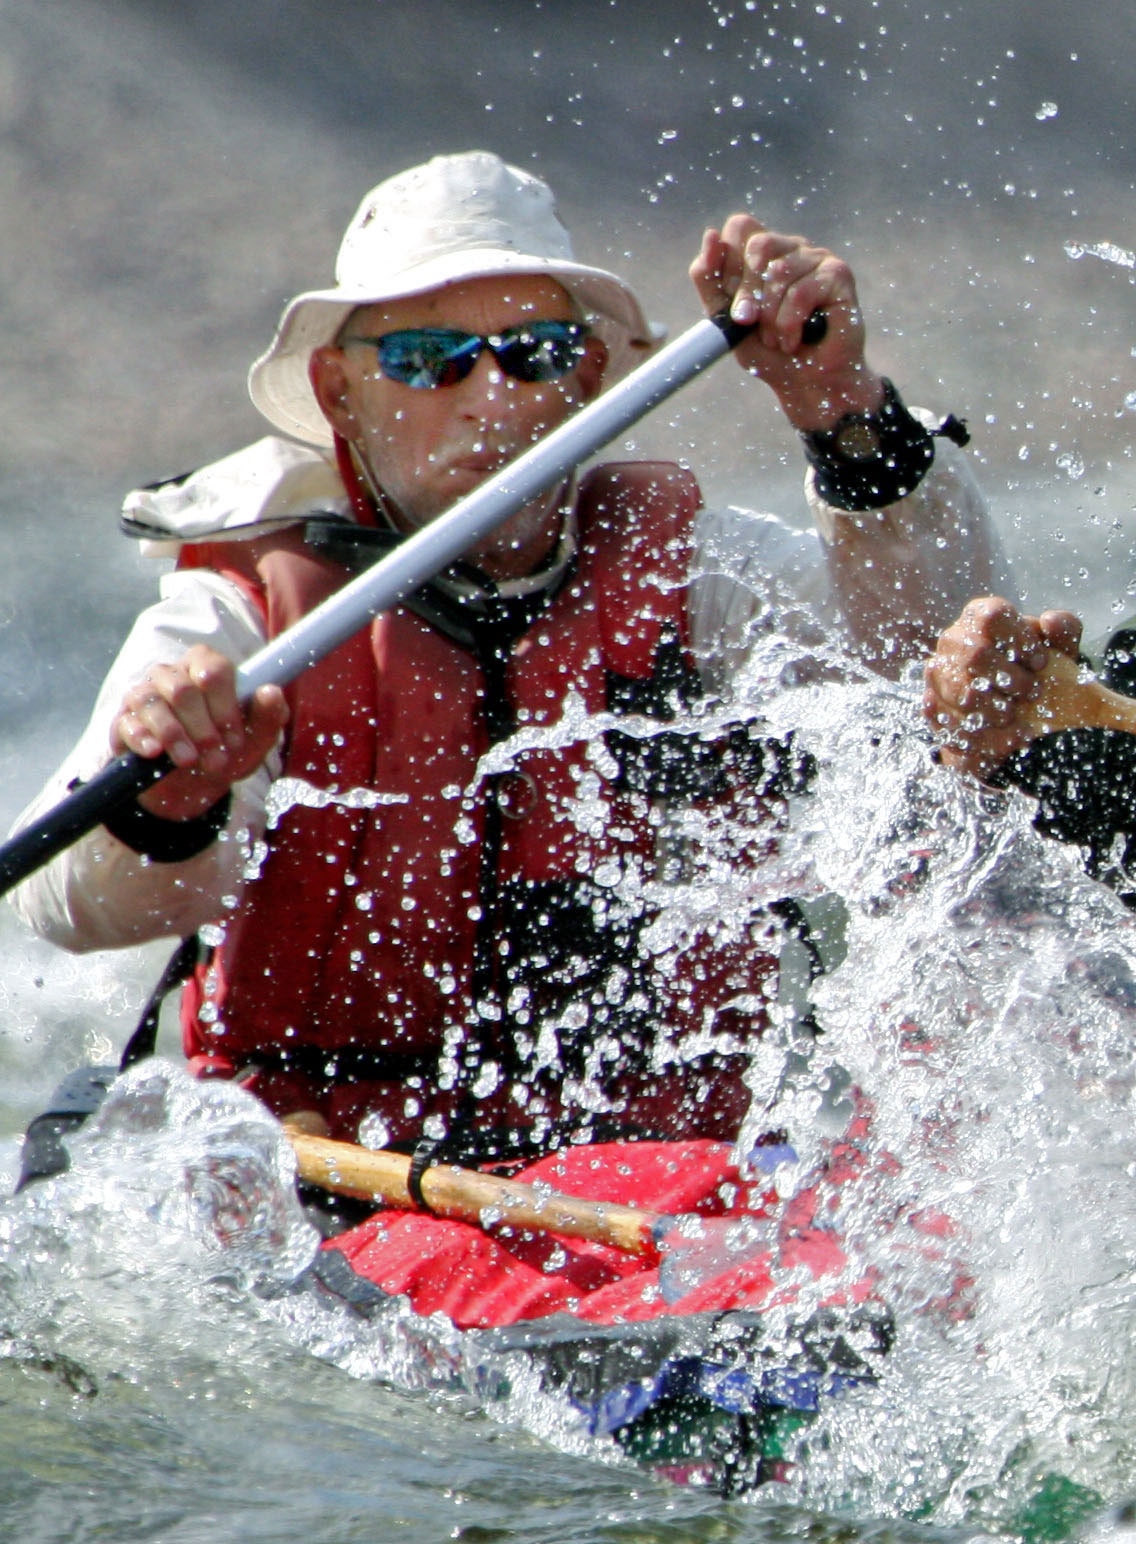 Rob canoeing the Burnside River in Nunavut | Photo courtesy of Rob Kesselring